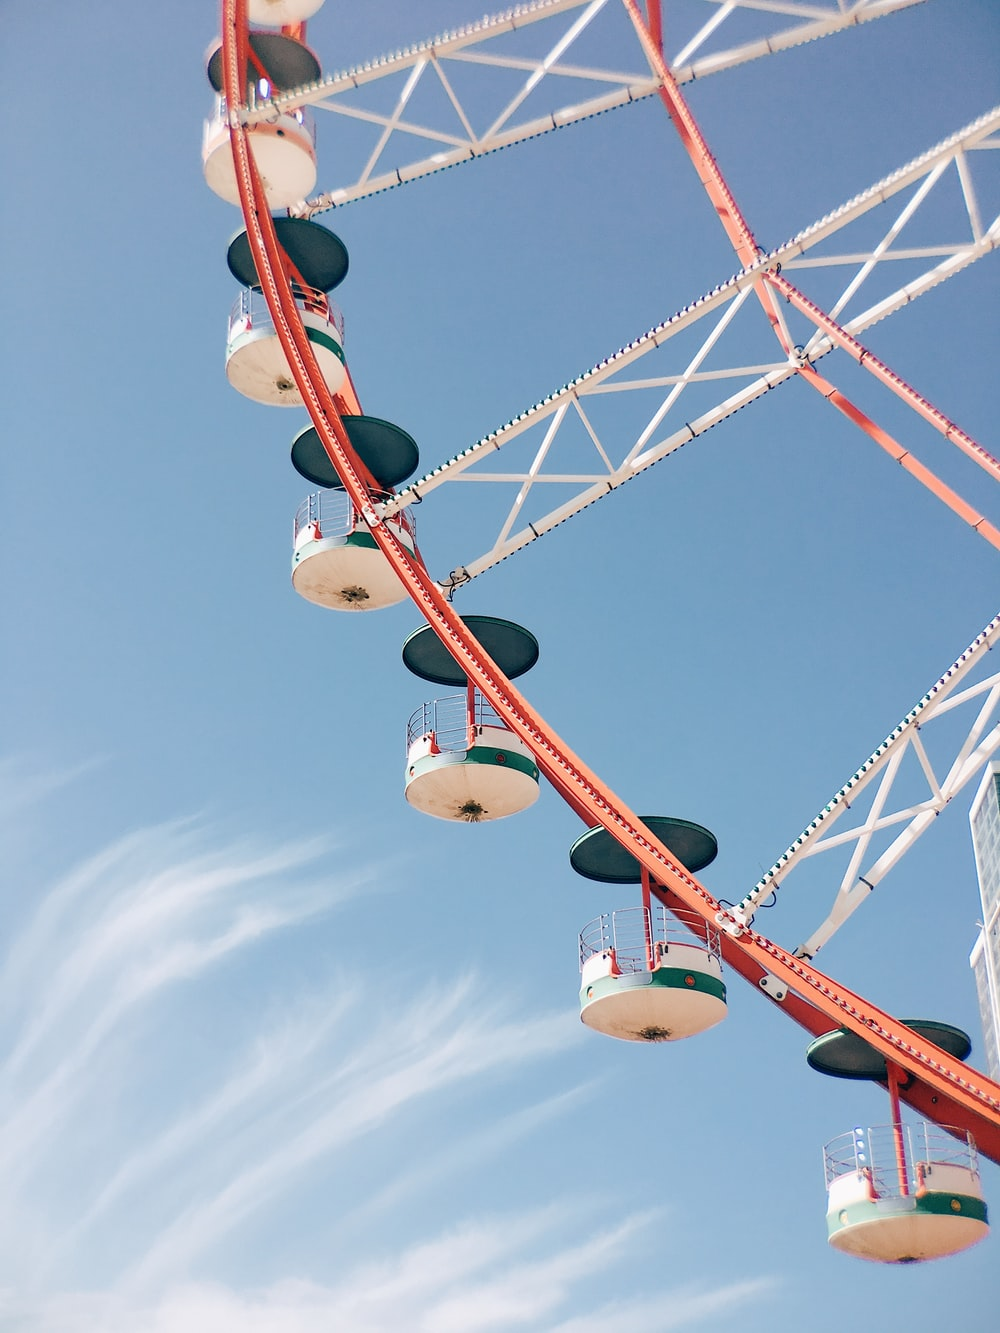 white and blue metal ferris wheel in closeup photography